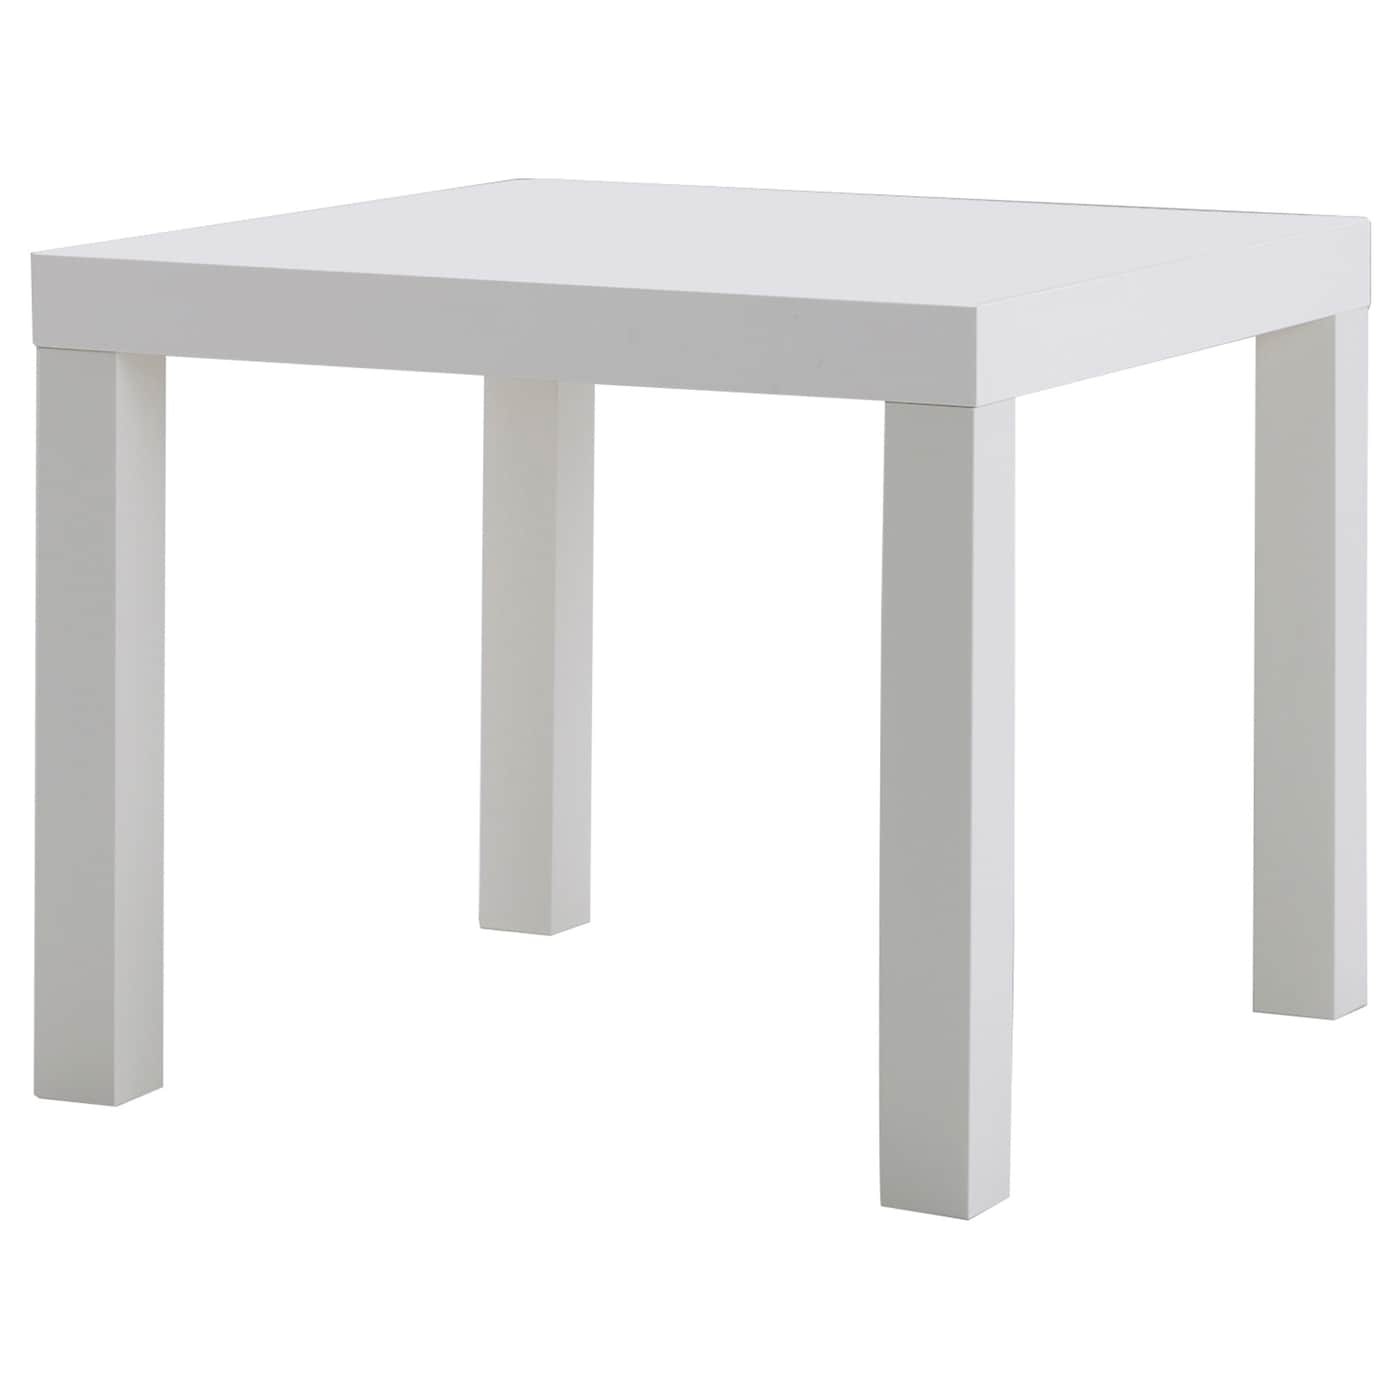 Lack side table white 55x55 cm ikea Ikea coffee tables and end tables